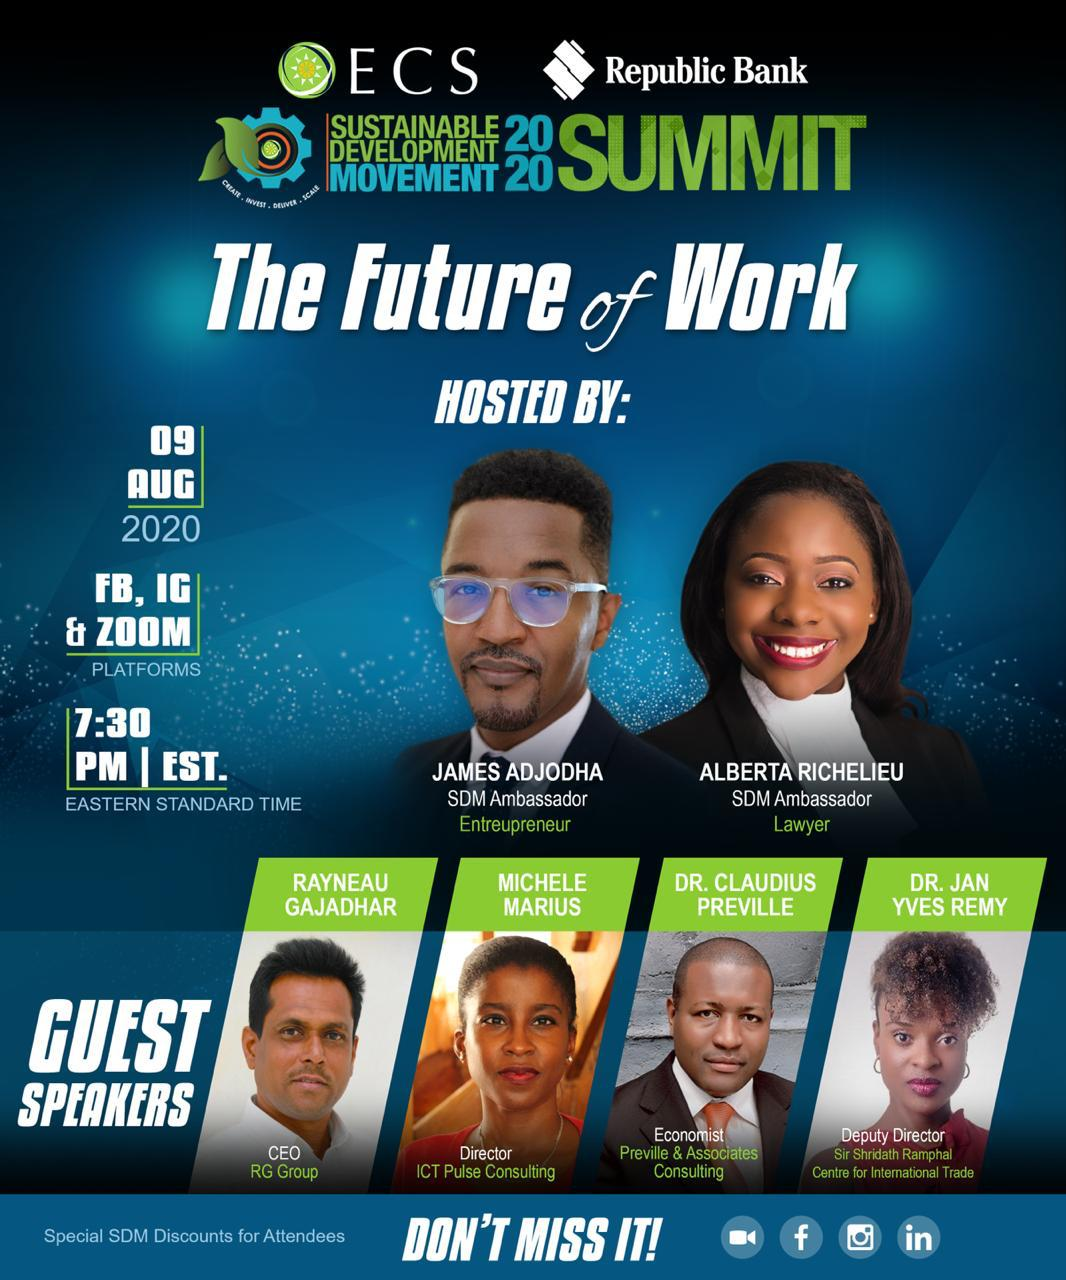 Webinar to discuss the Future of work